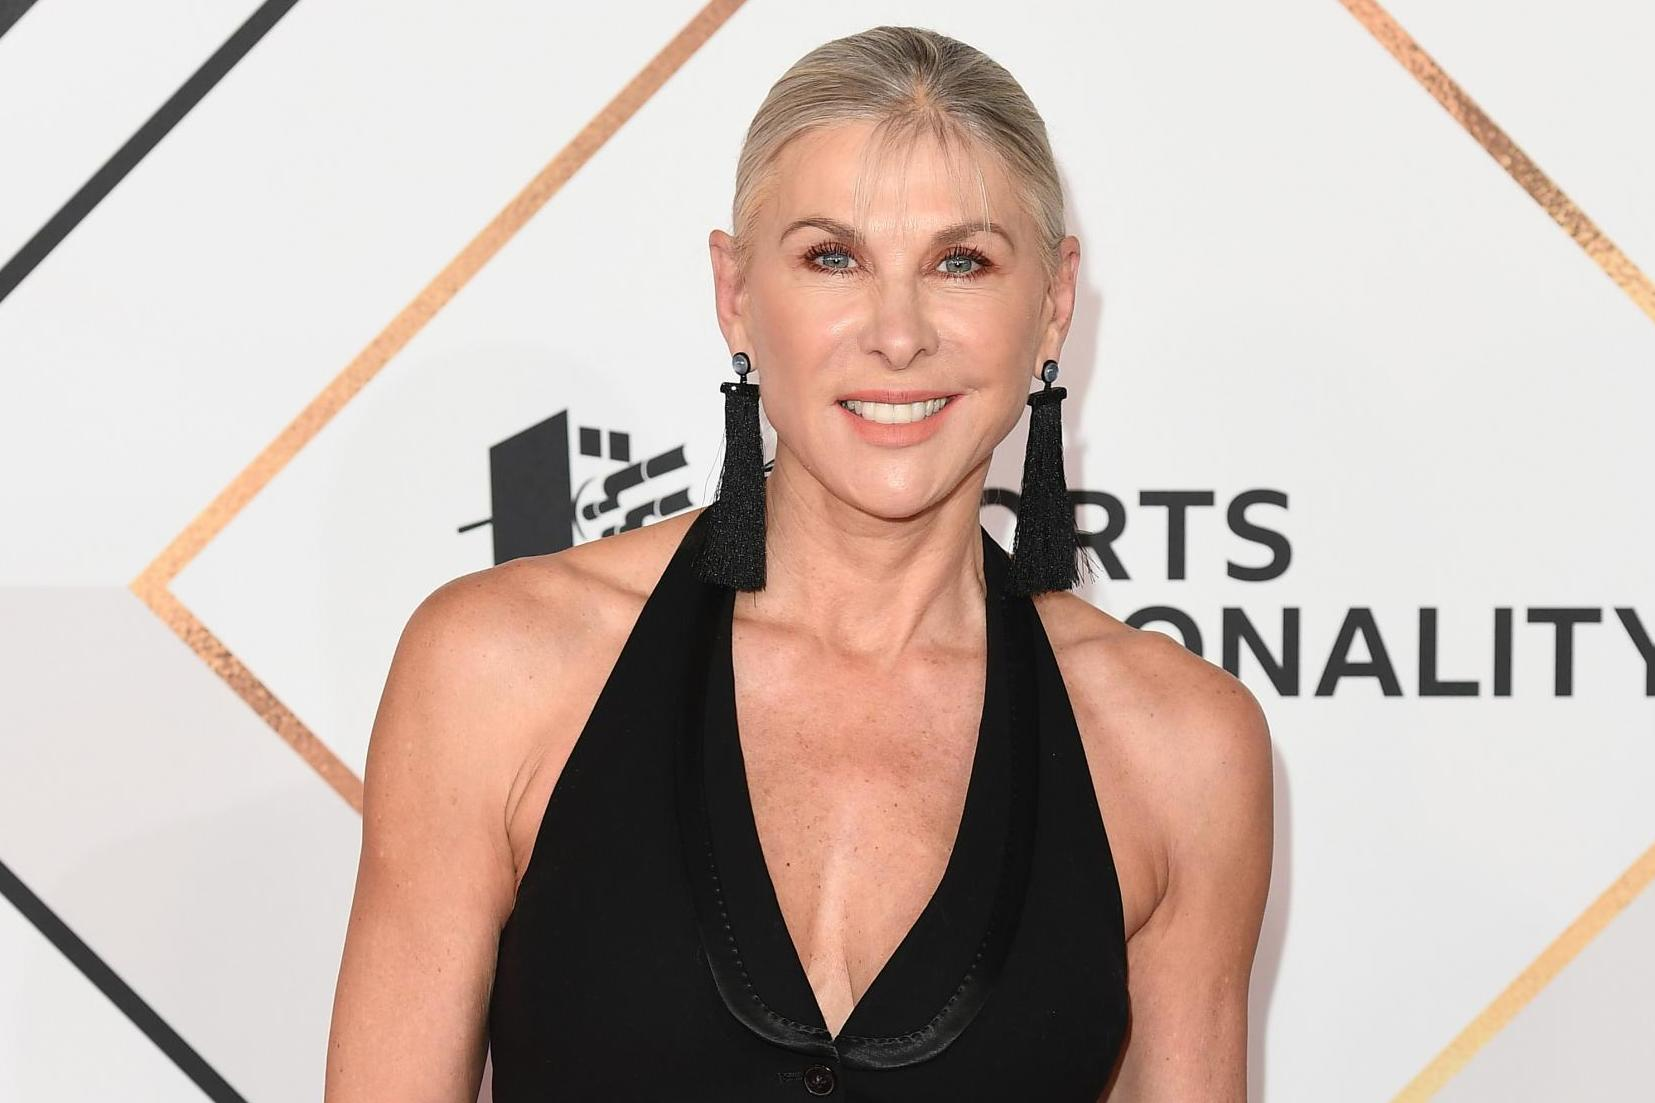 Angela Davies Sex Videos sharron davies says transgender athletes could 'ruin women's